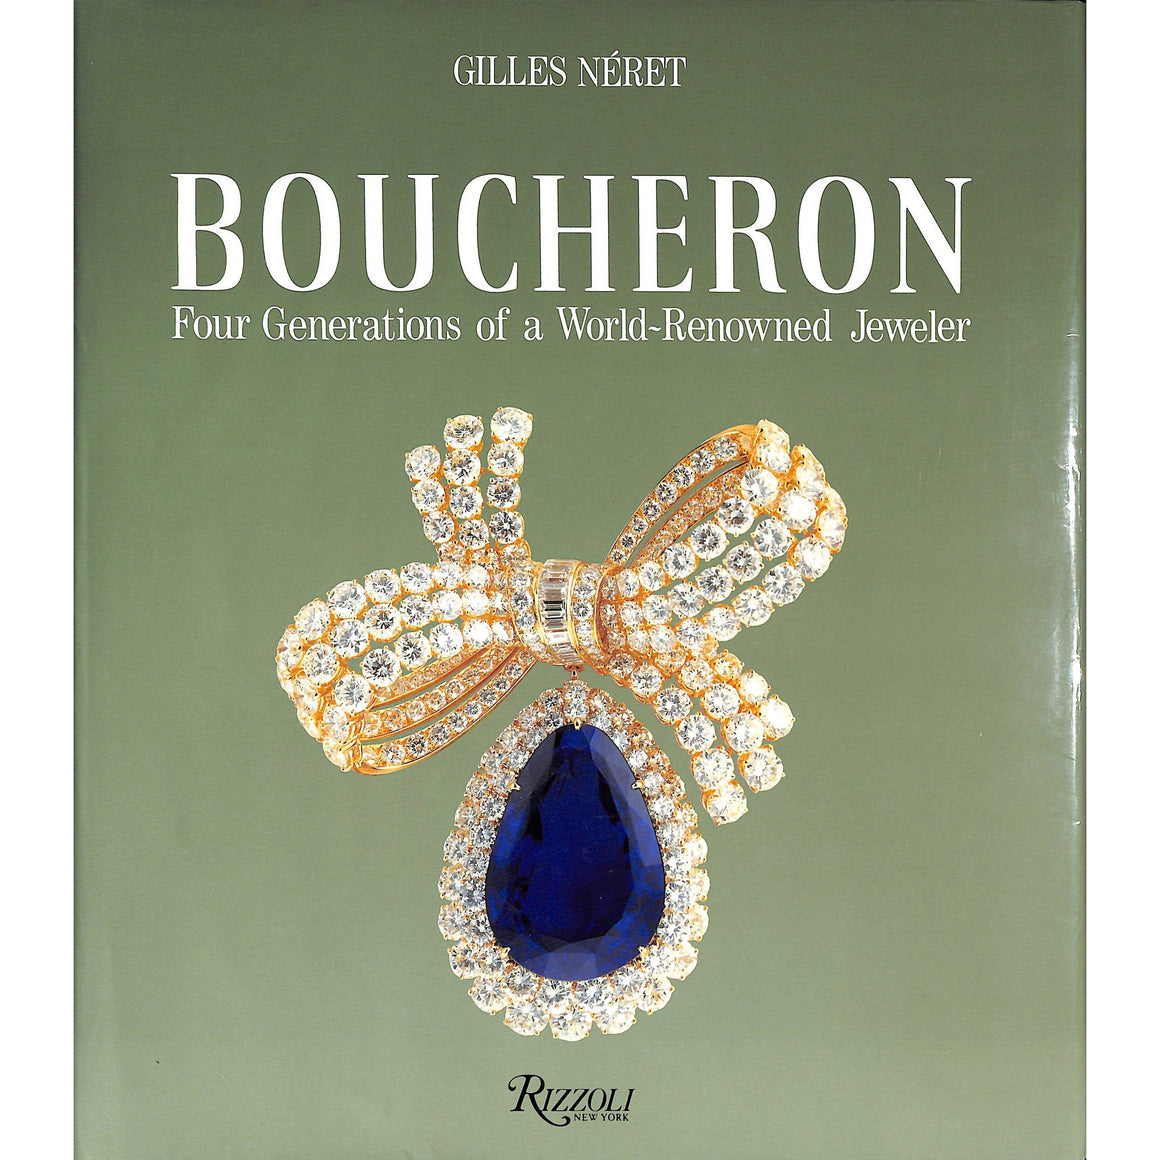 Boucheron: Four Generations of a World-Renowned Jeweler